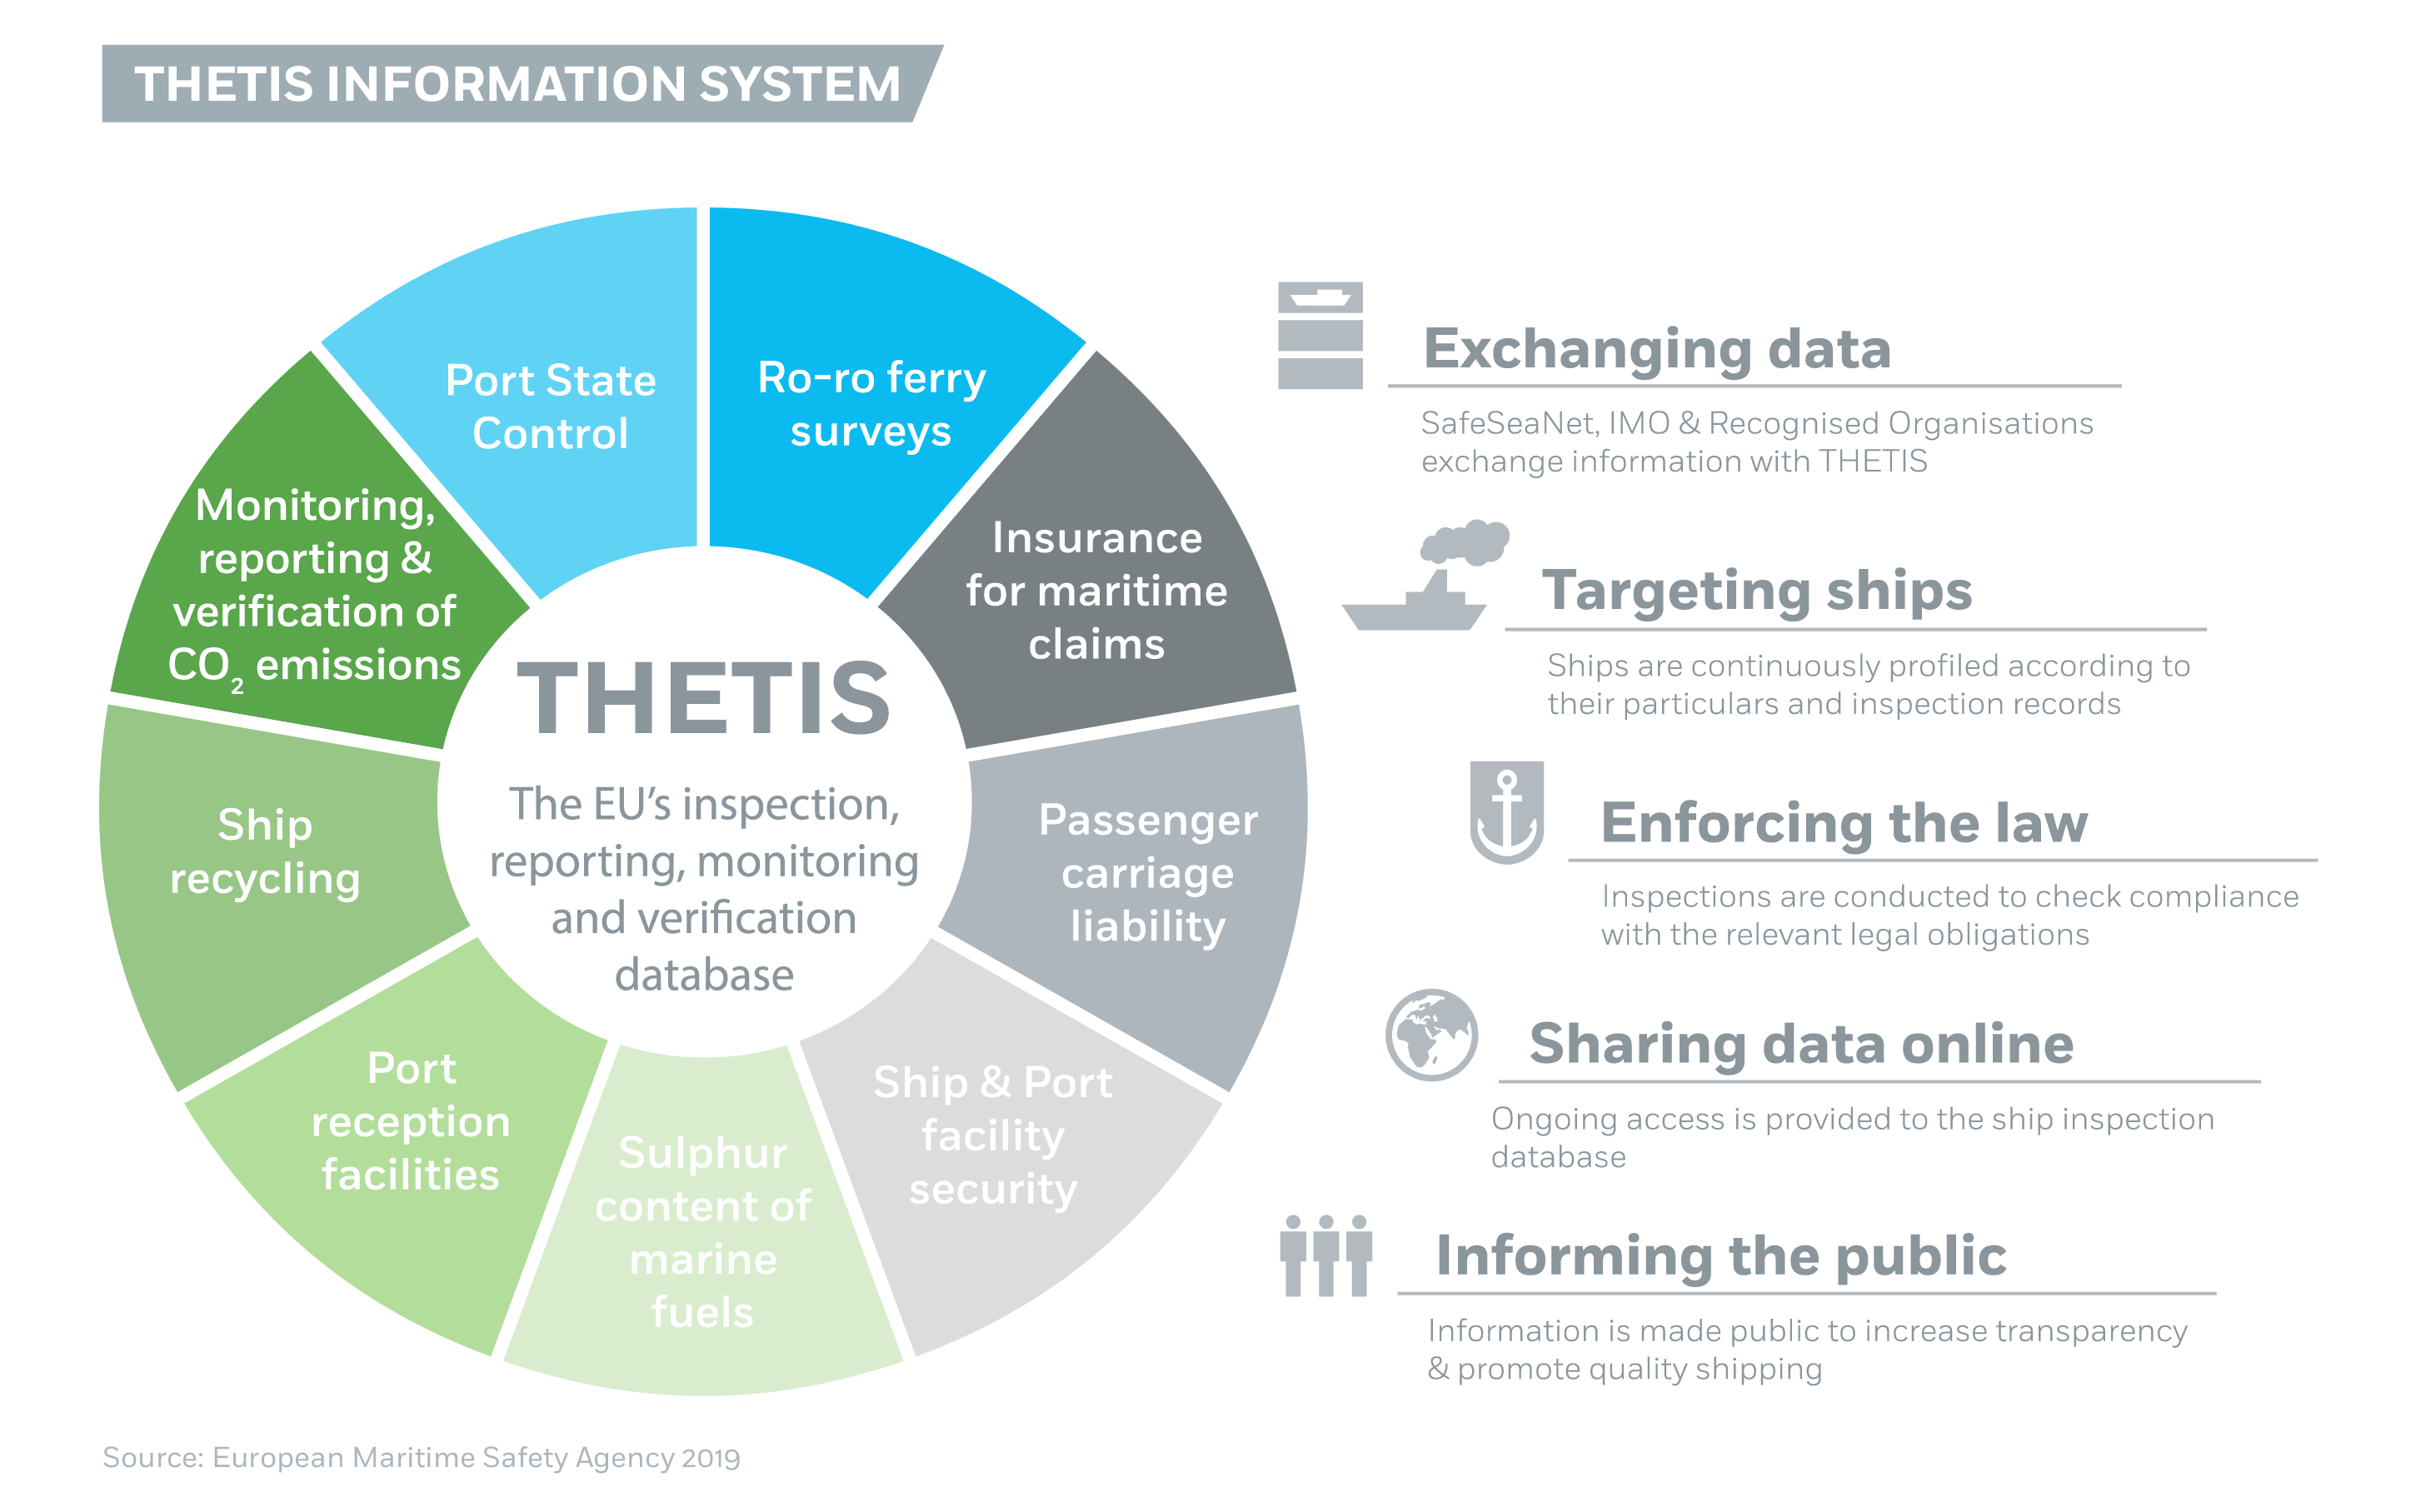 THETIS Information System Image 1